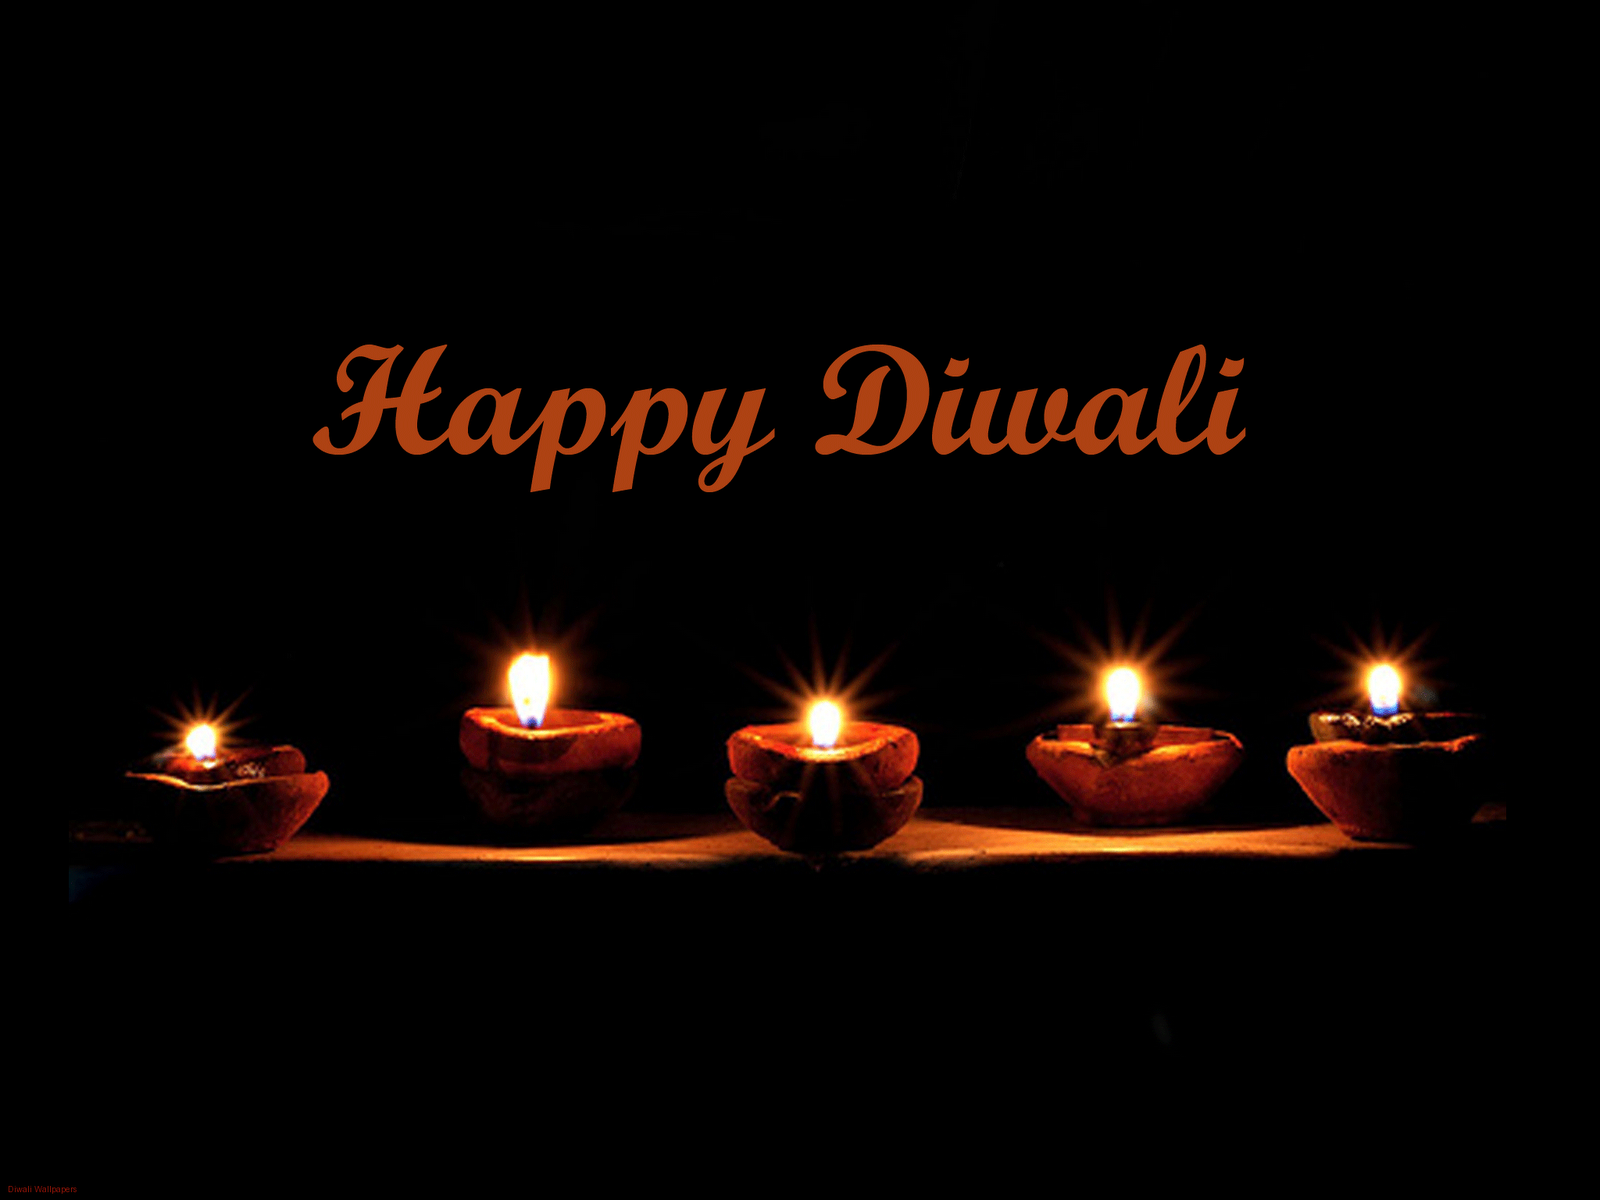 happy diwali 2014 image